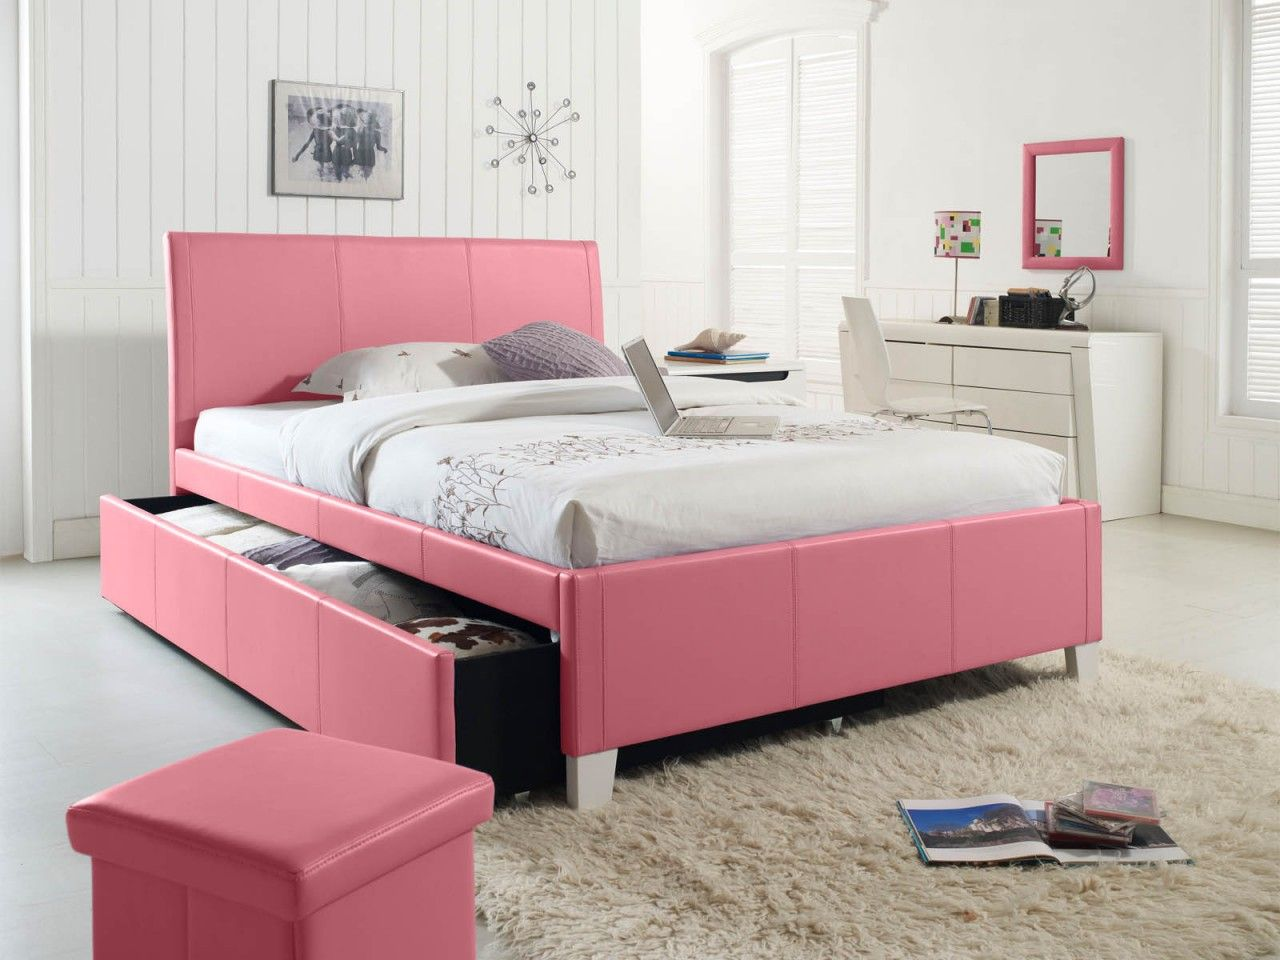 beautiful pink bed frame designs collection for girls room cool light pink upholstered trundle bed